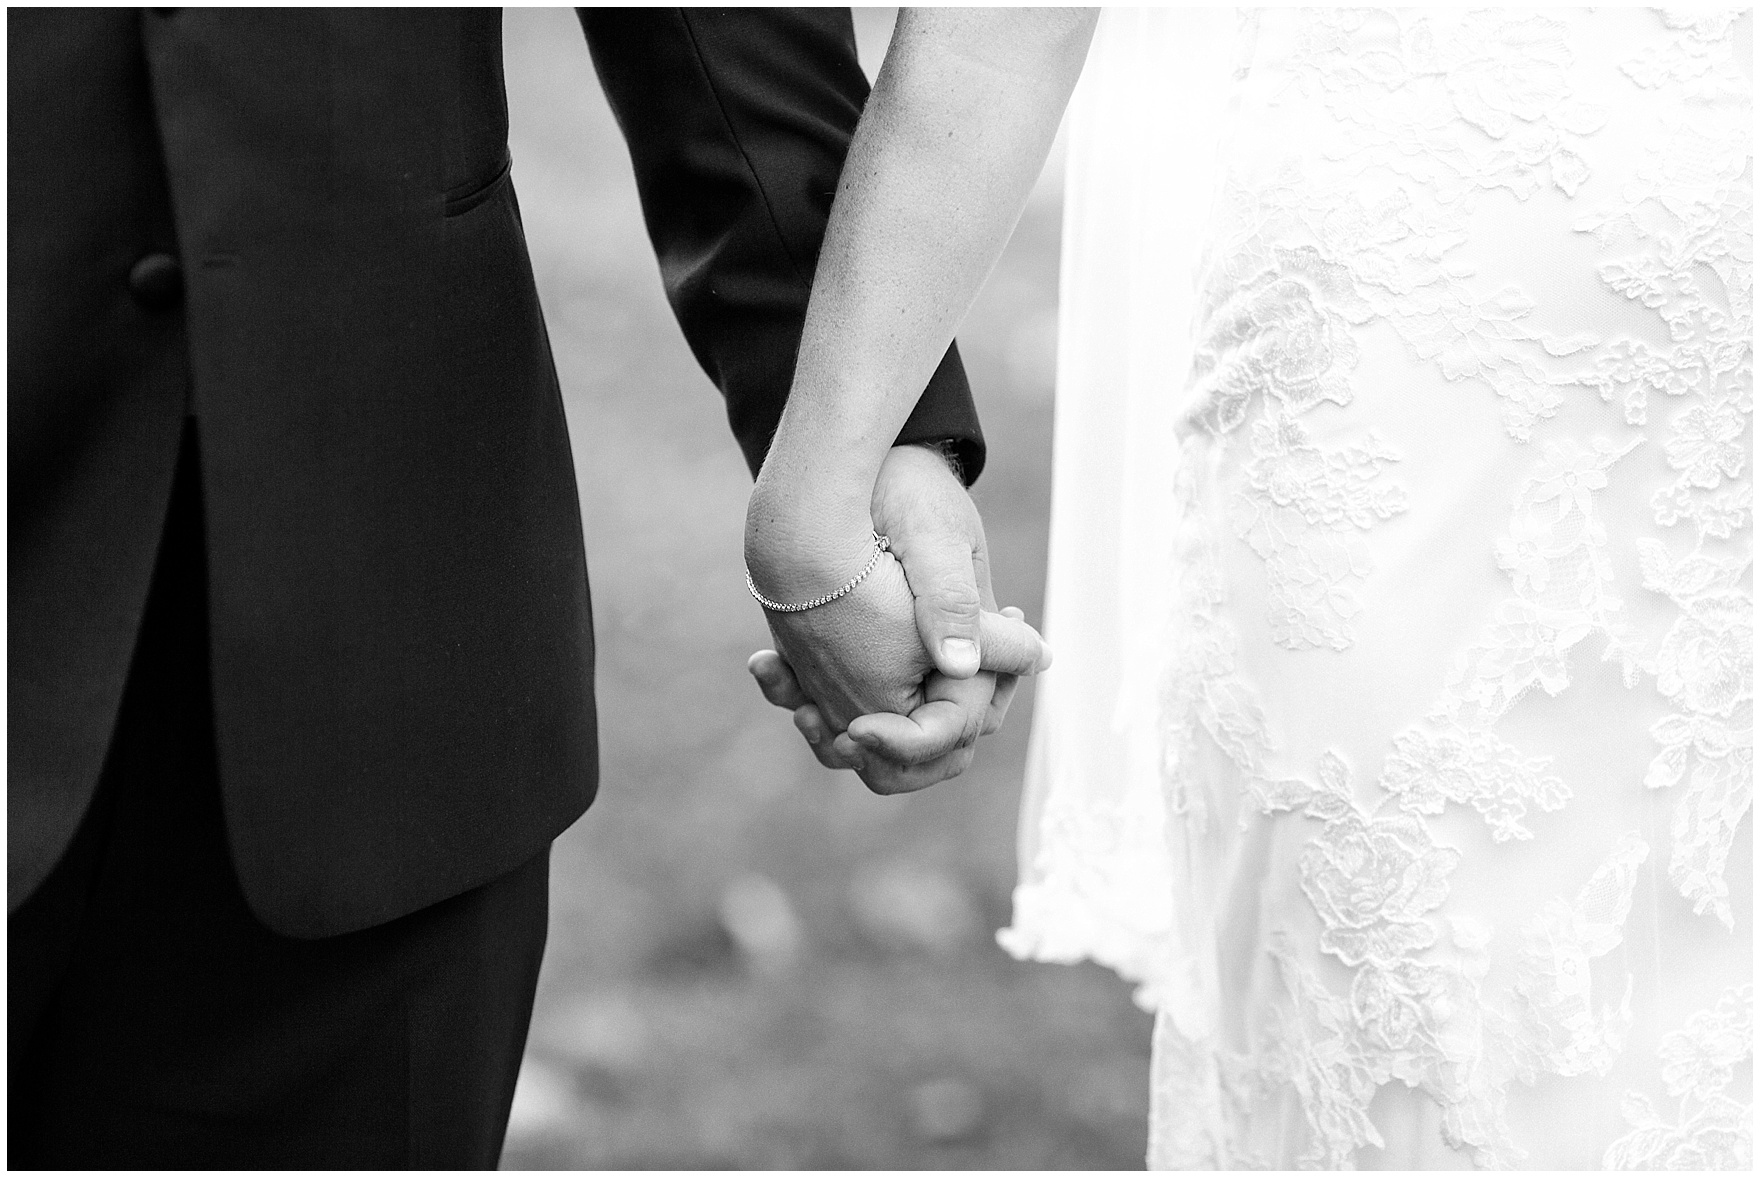 The bride and groom hold hands and pose for portraits during a Glen Club Glenview Illinois wedding.